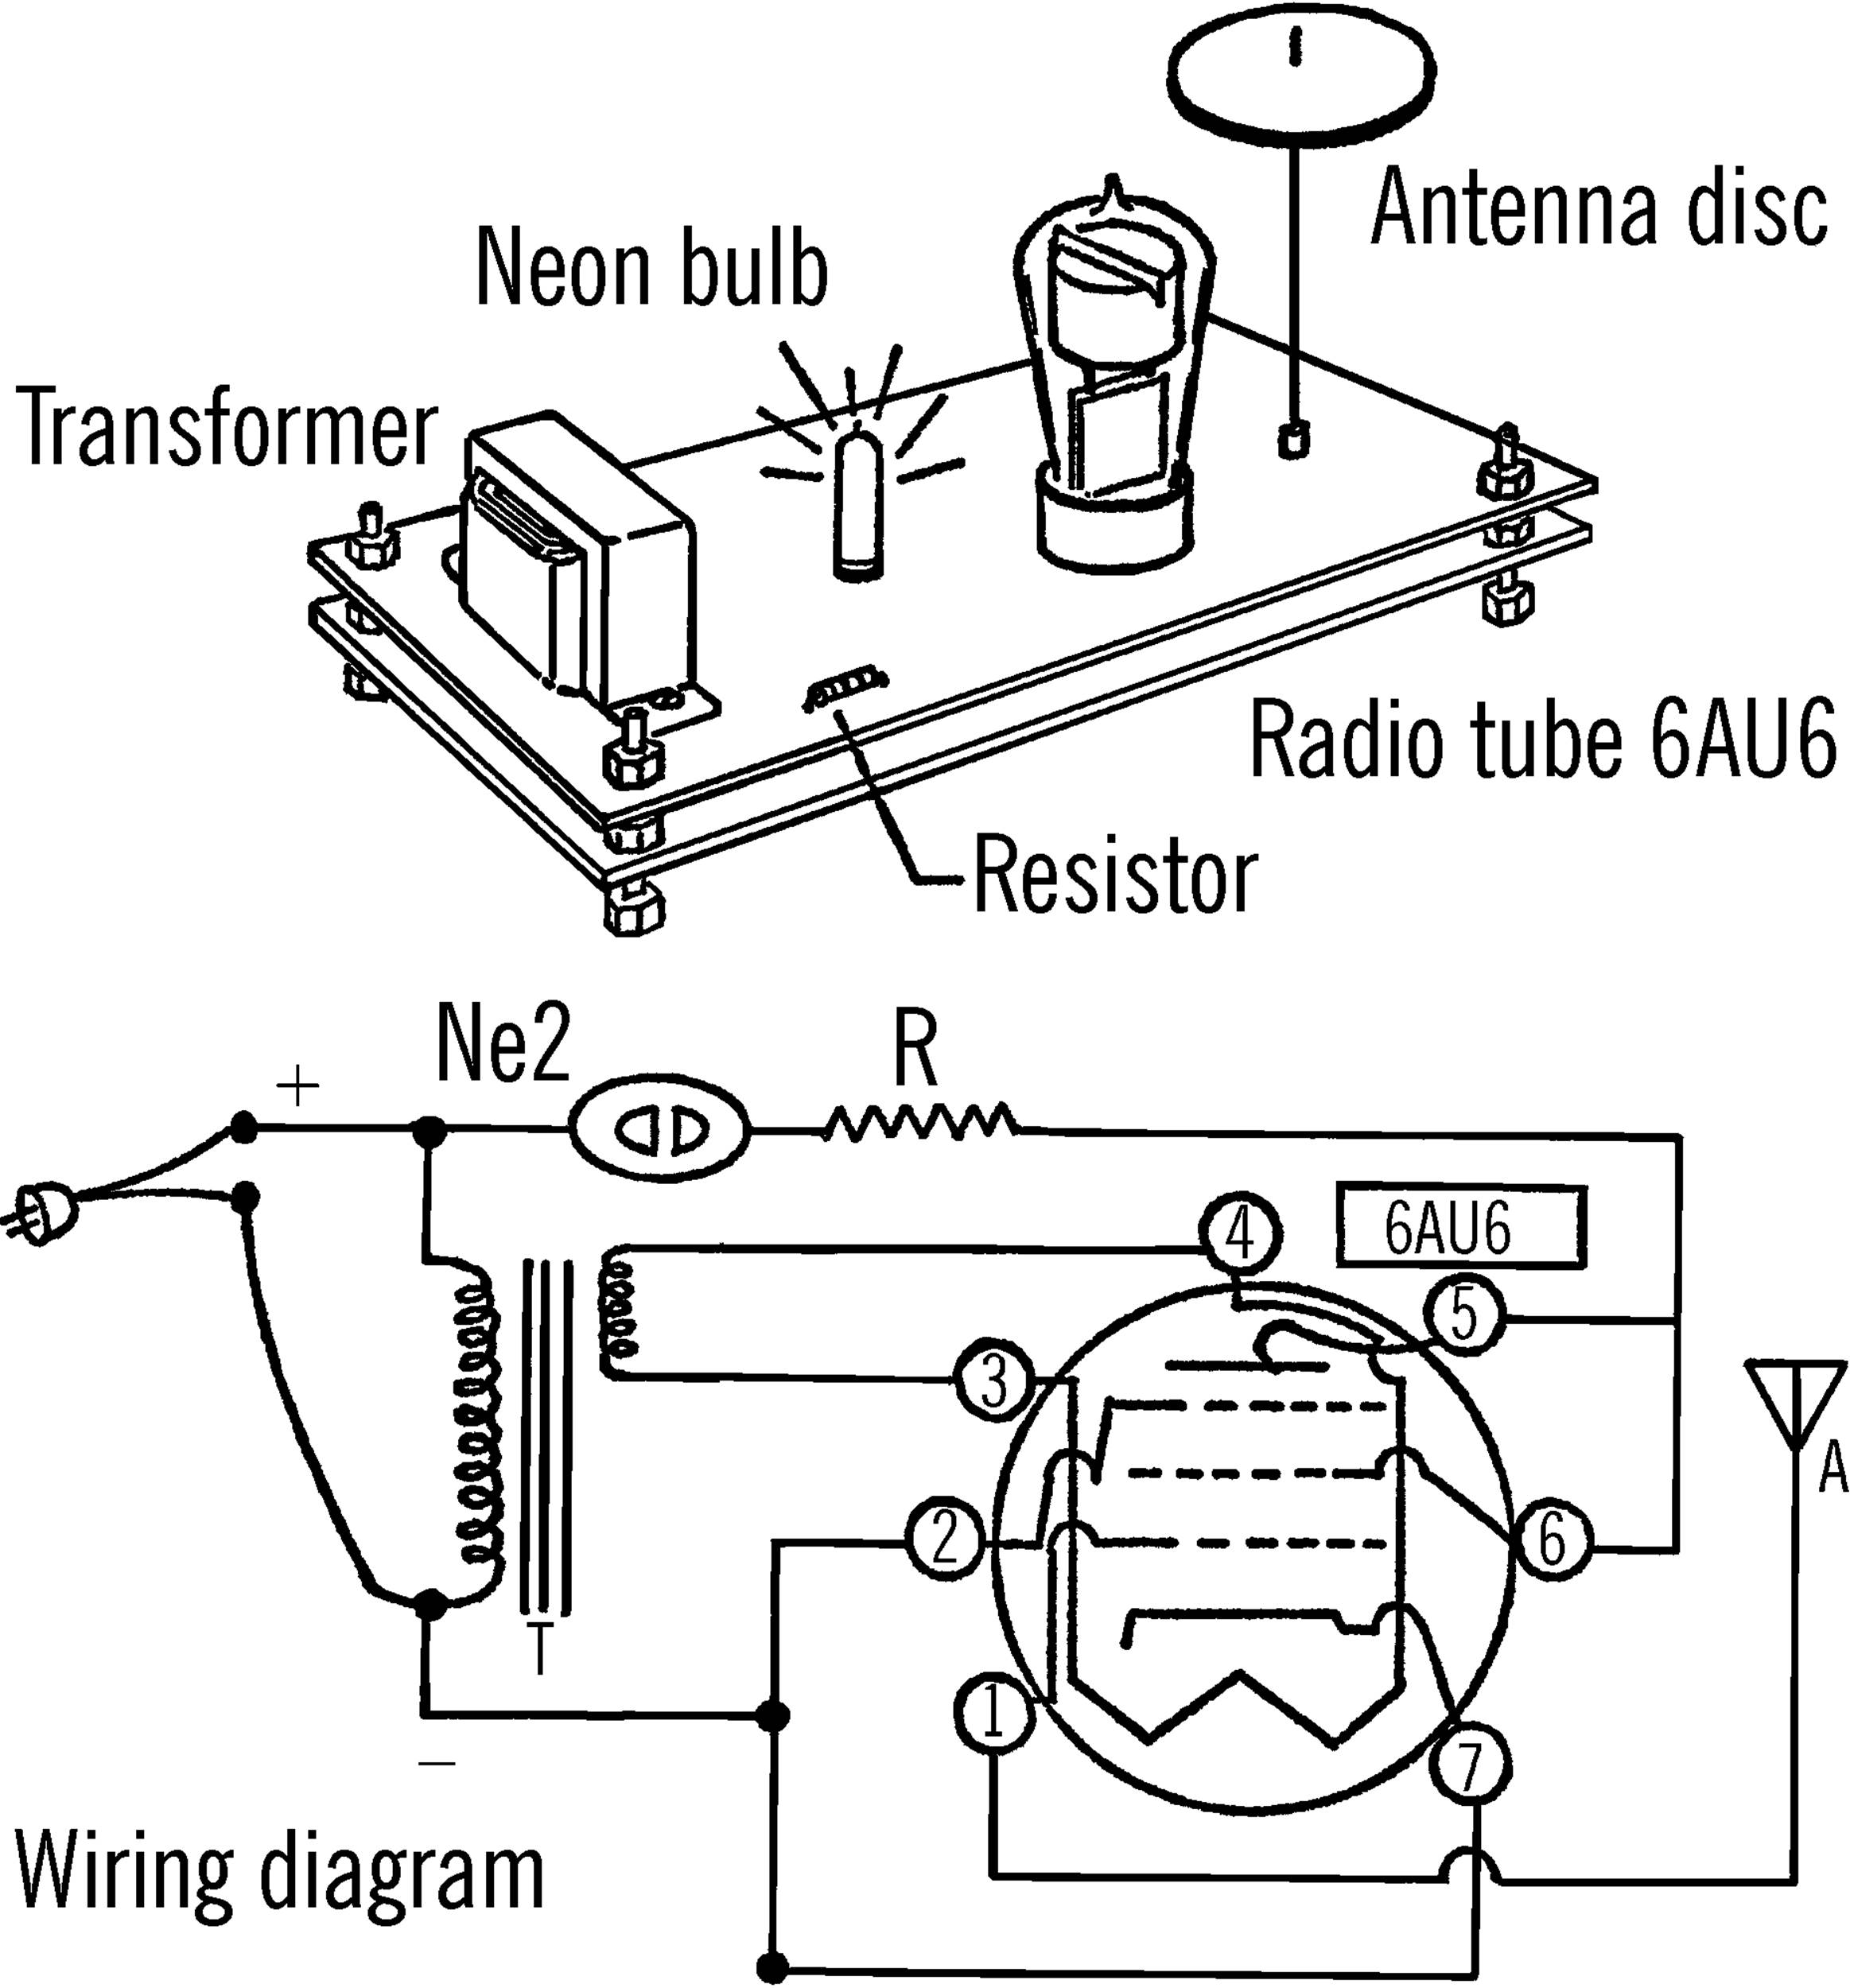 electronic electroscope Inside every electronic device is a complex and compact network of printed circuit board (pcb) circuitry and miniaturized components these are susceptible to corrosion that could impact reliability and shorten device life.